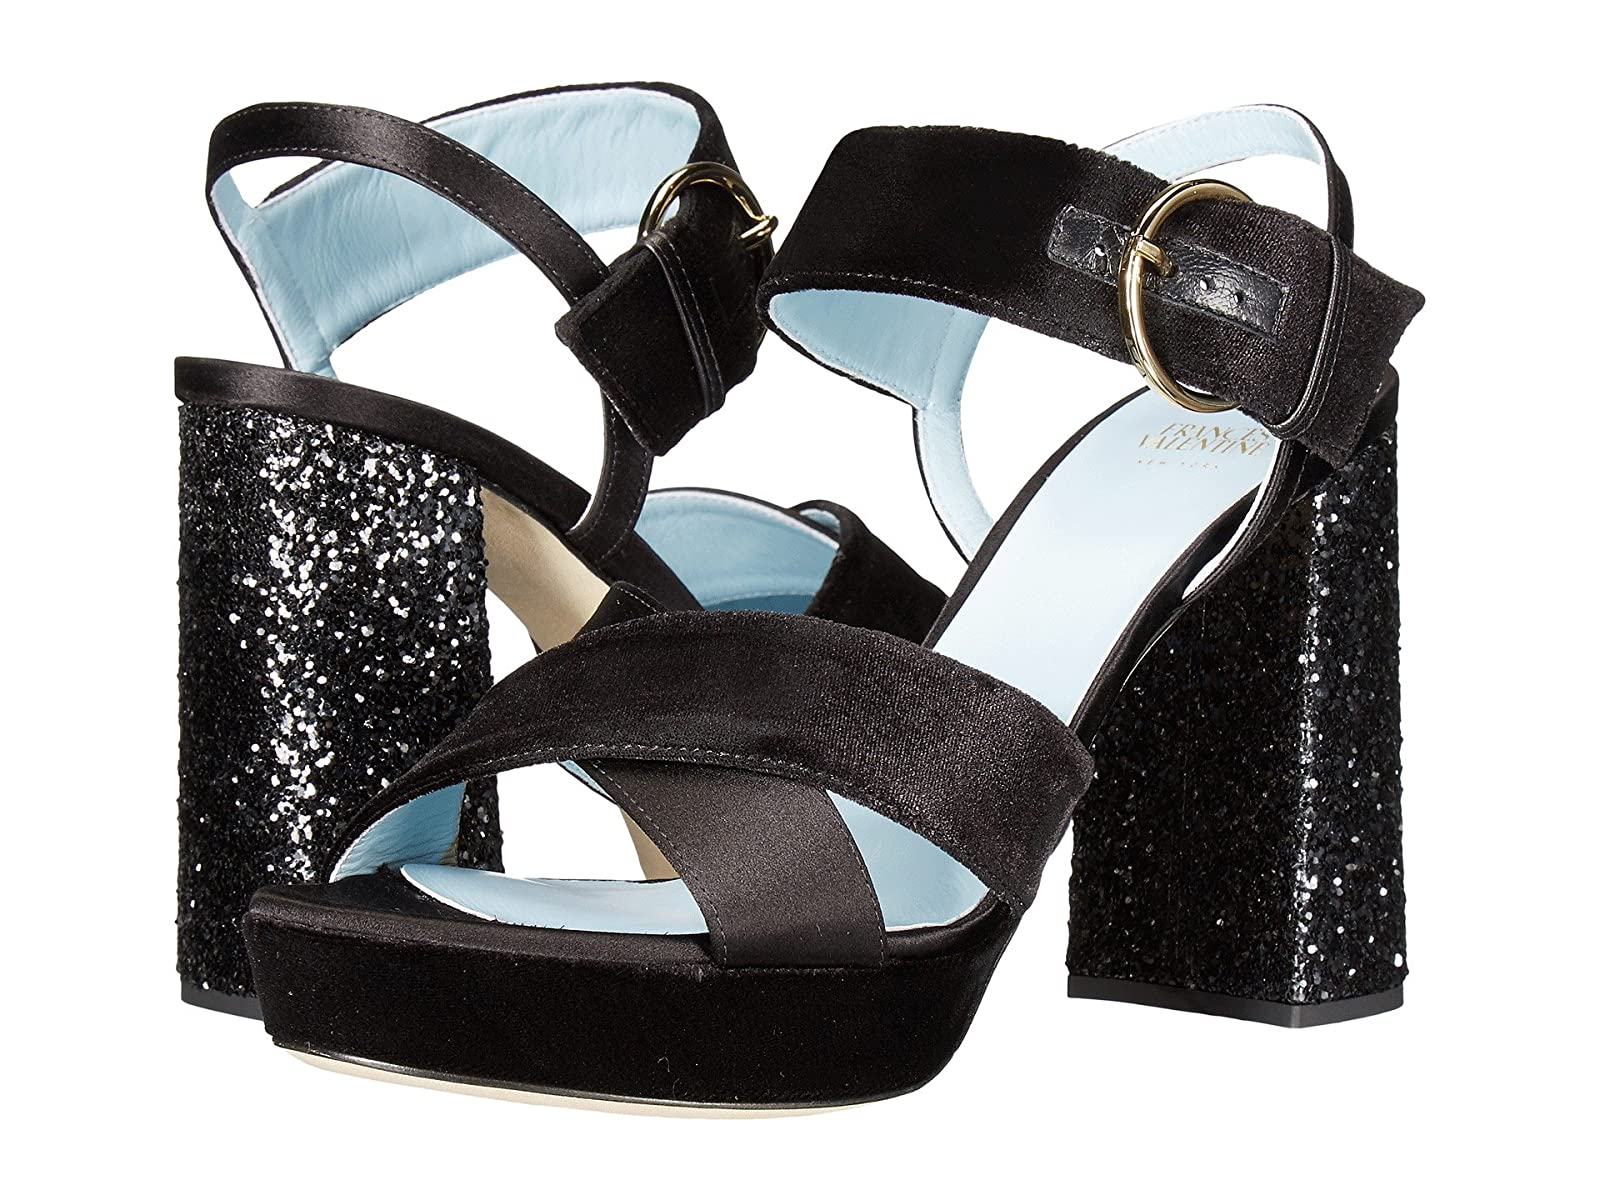 Frances Valentine DizzieCheap and distinctive eye-catching shoes